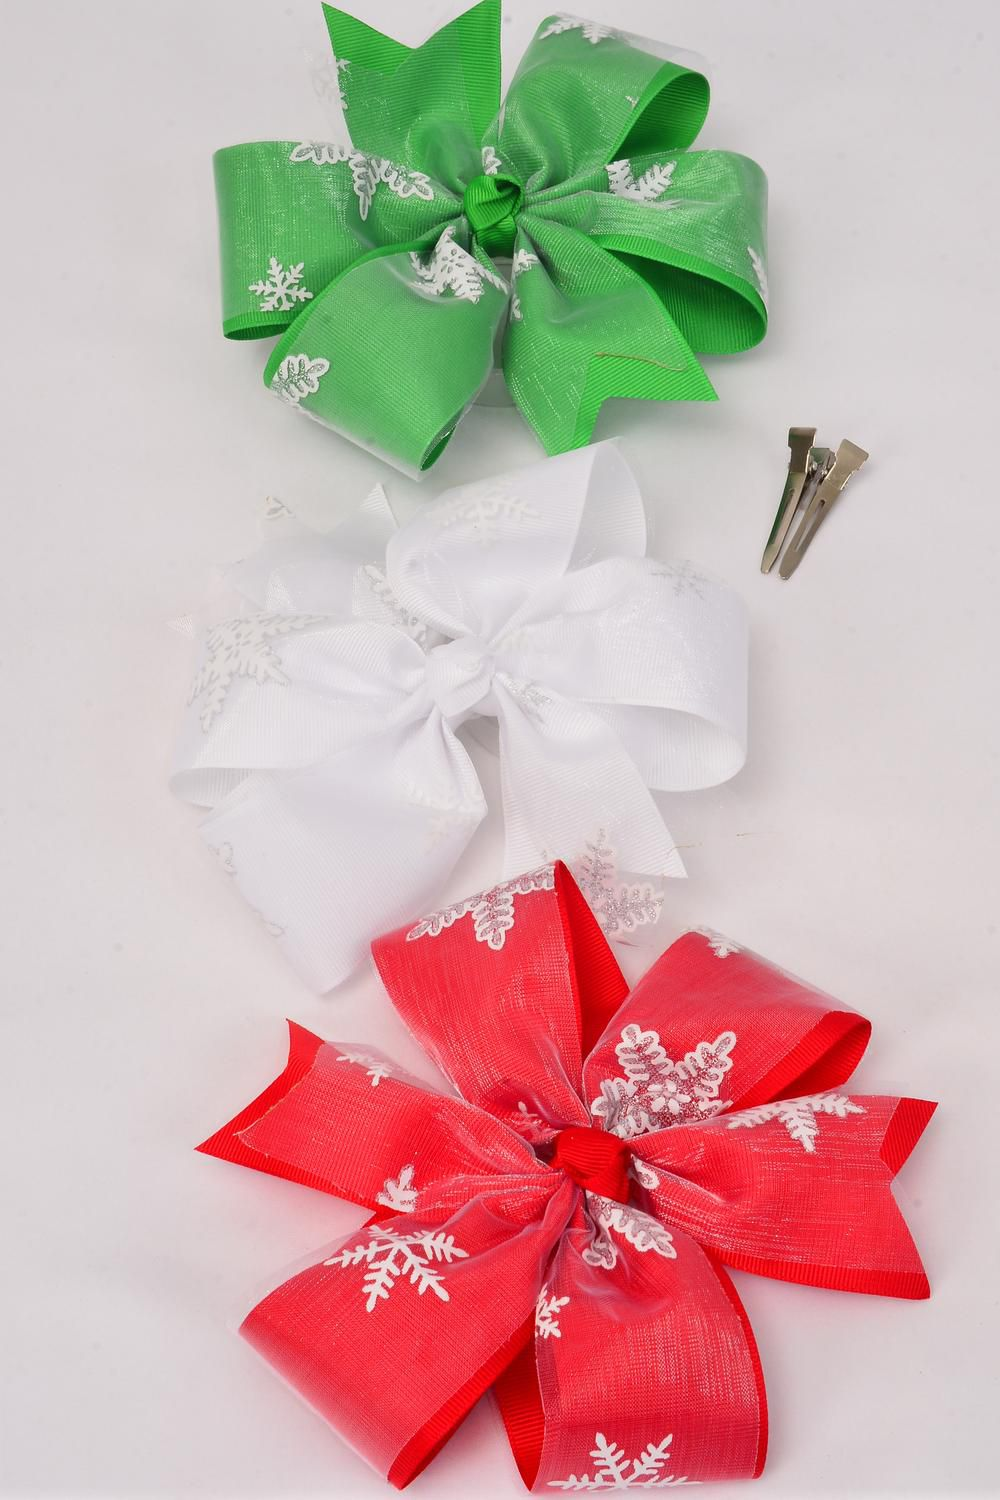 "Hair Bow Jumbo XMAS Snow Flake Red White Green Mix Grosgrain Bow-tie/DZ **Alligator Clip** Bow-6.5""x 6.5"" Wide,4 Red,4 White,4 Green,3 Color Asst,Clip Strip & UPC Code"